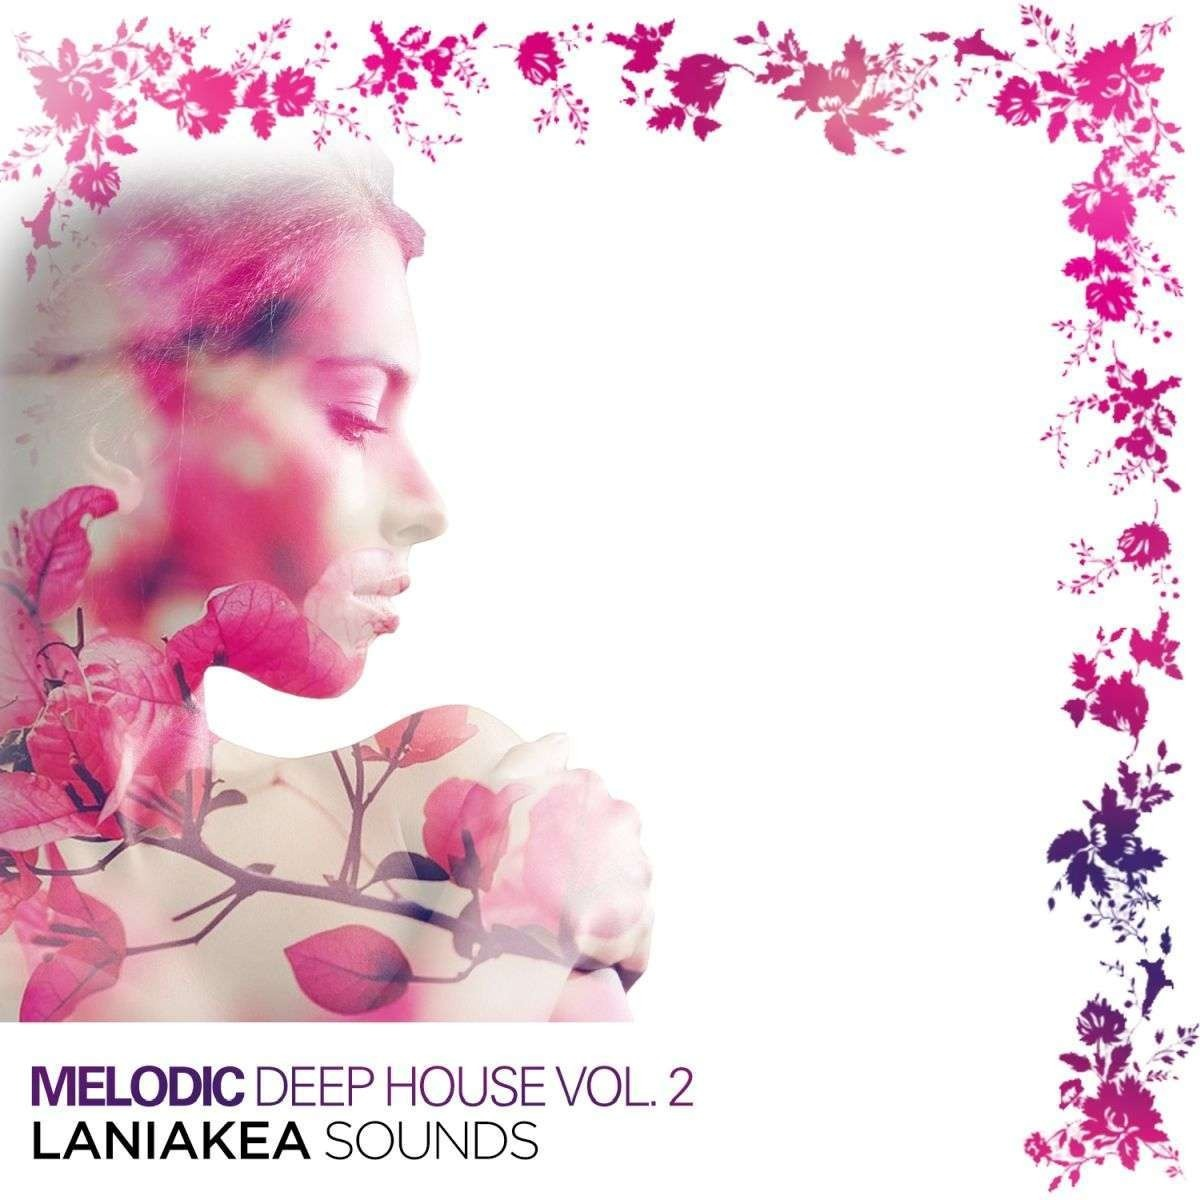 Melodic Deep House Vol 2